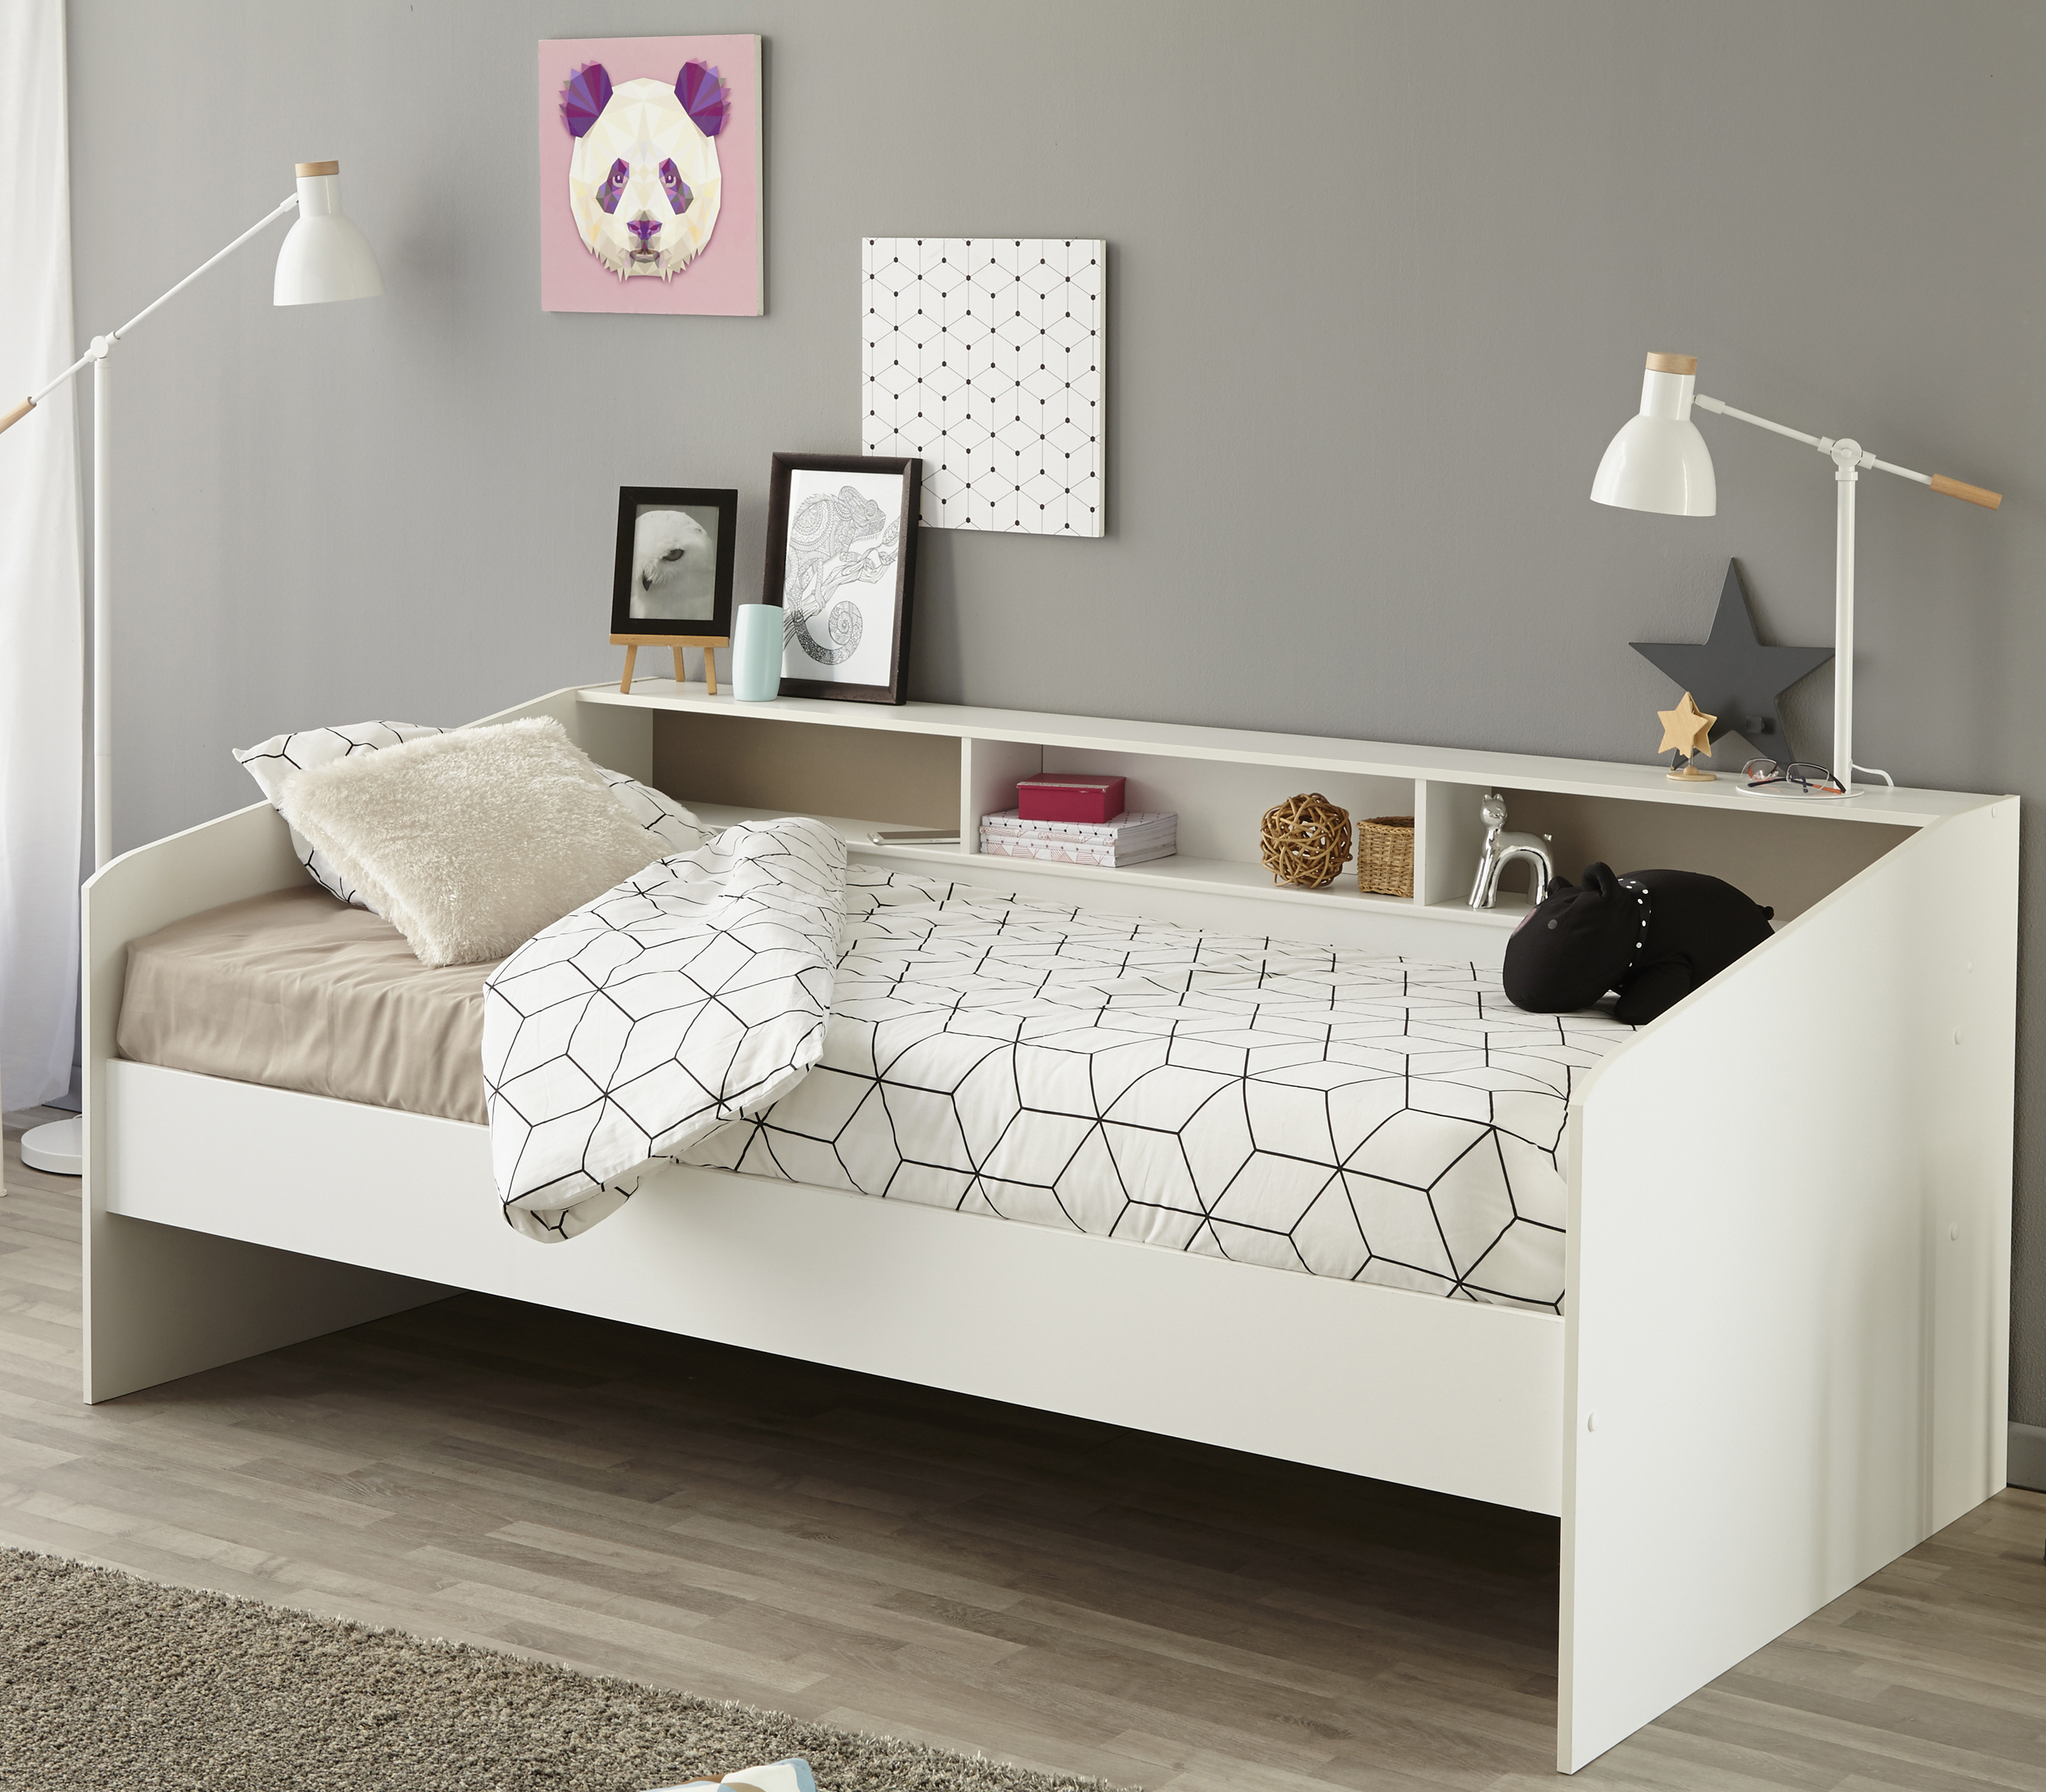 nona 1 90x200 bett inkl 2 schubladen von fmd sandeiche wei lava by ebay. Black Bedroom Furniture Sets. Home Design Ideas